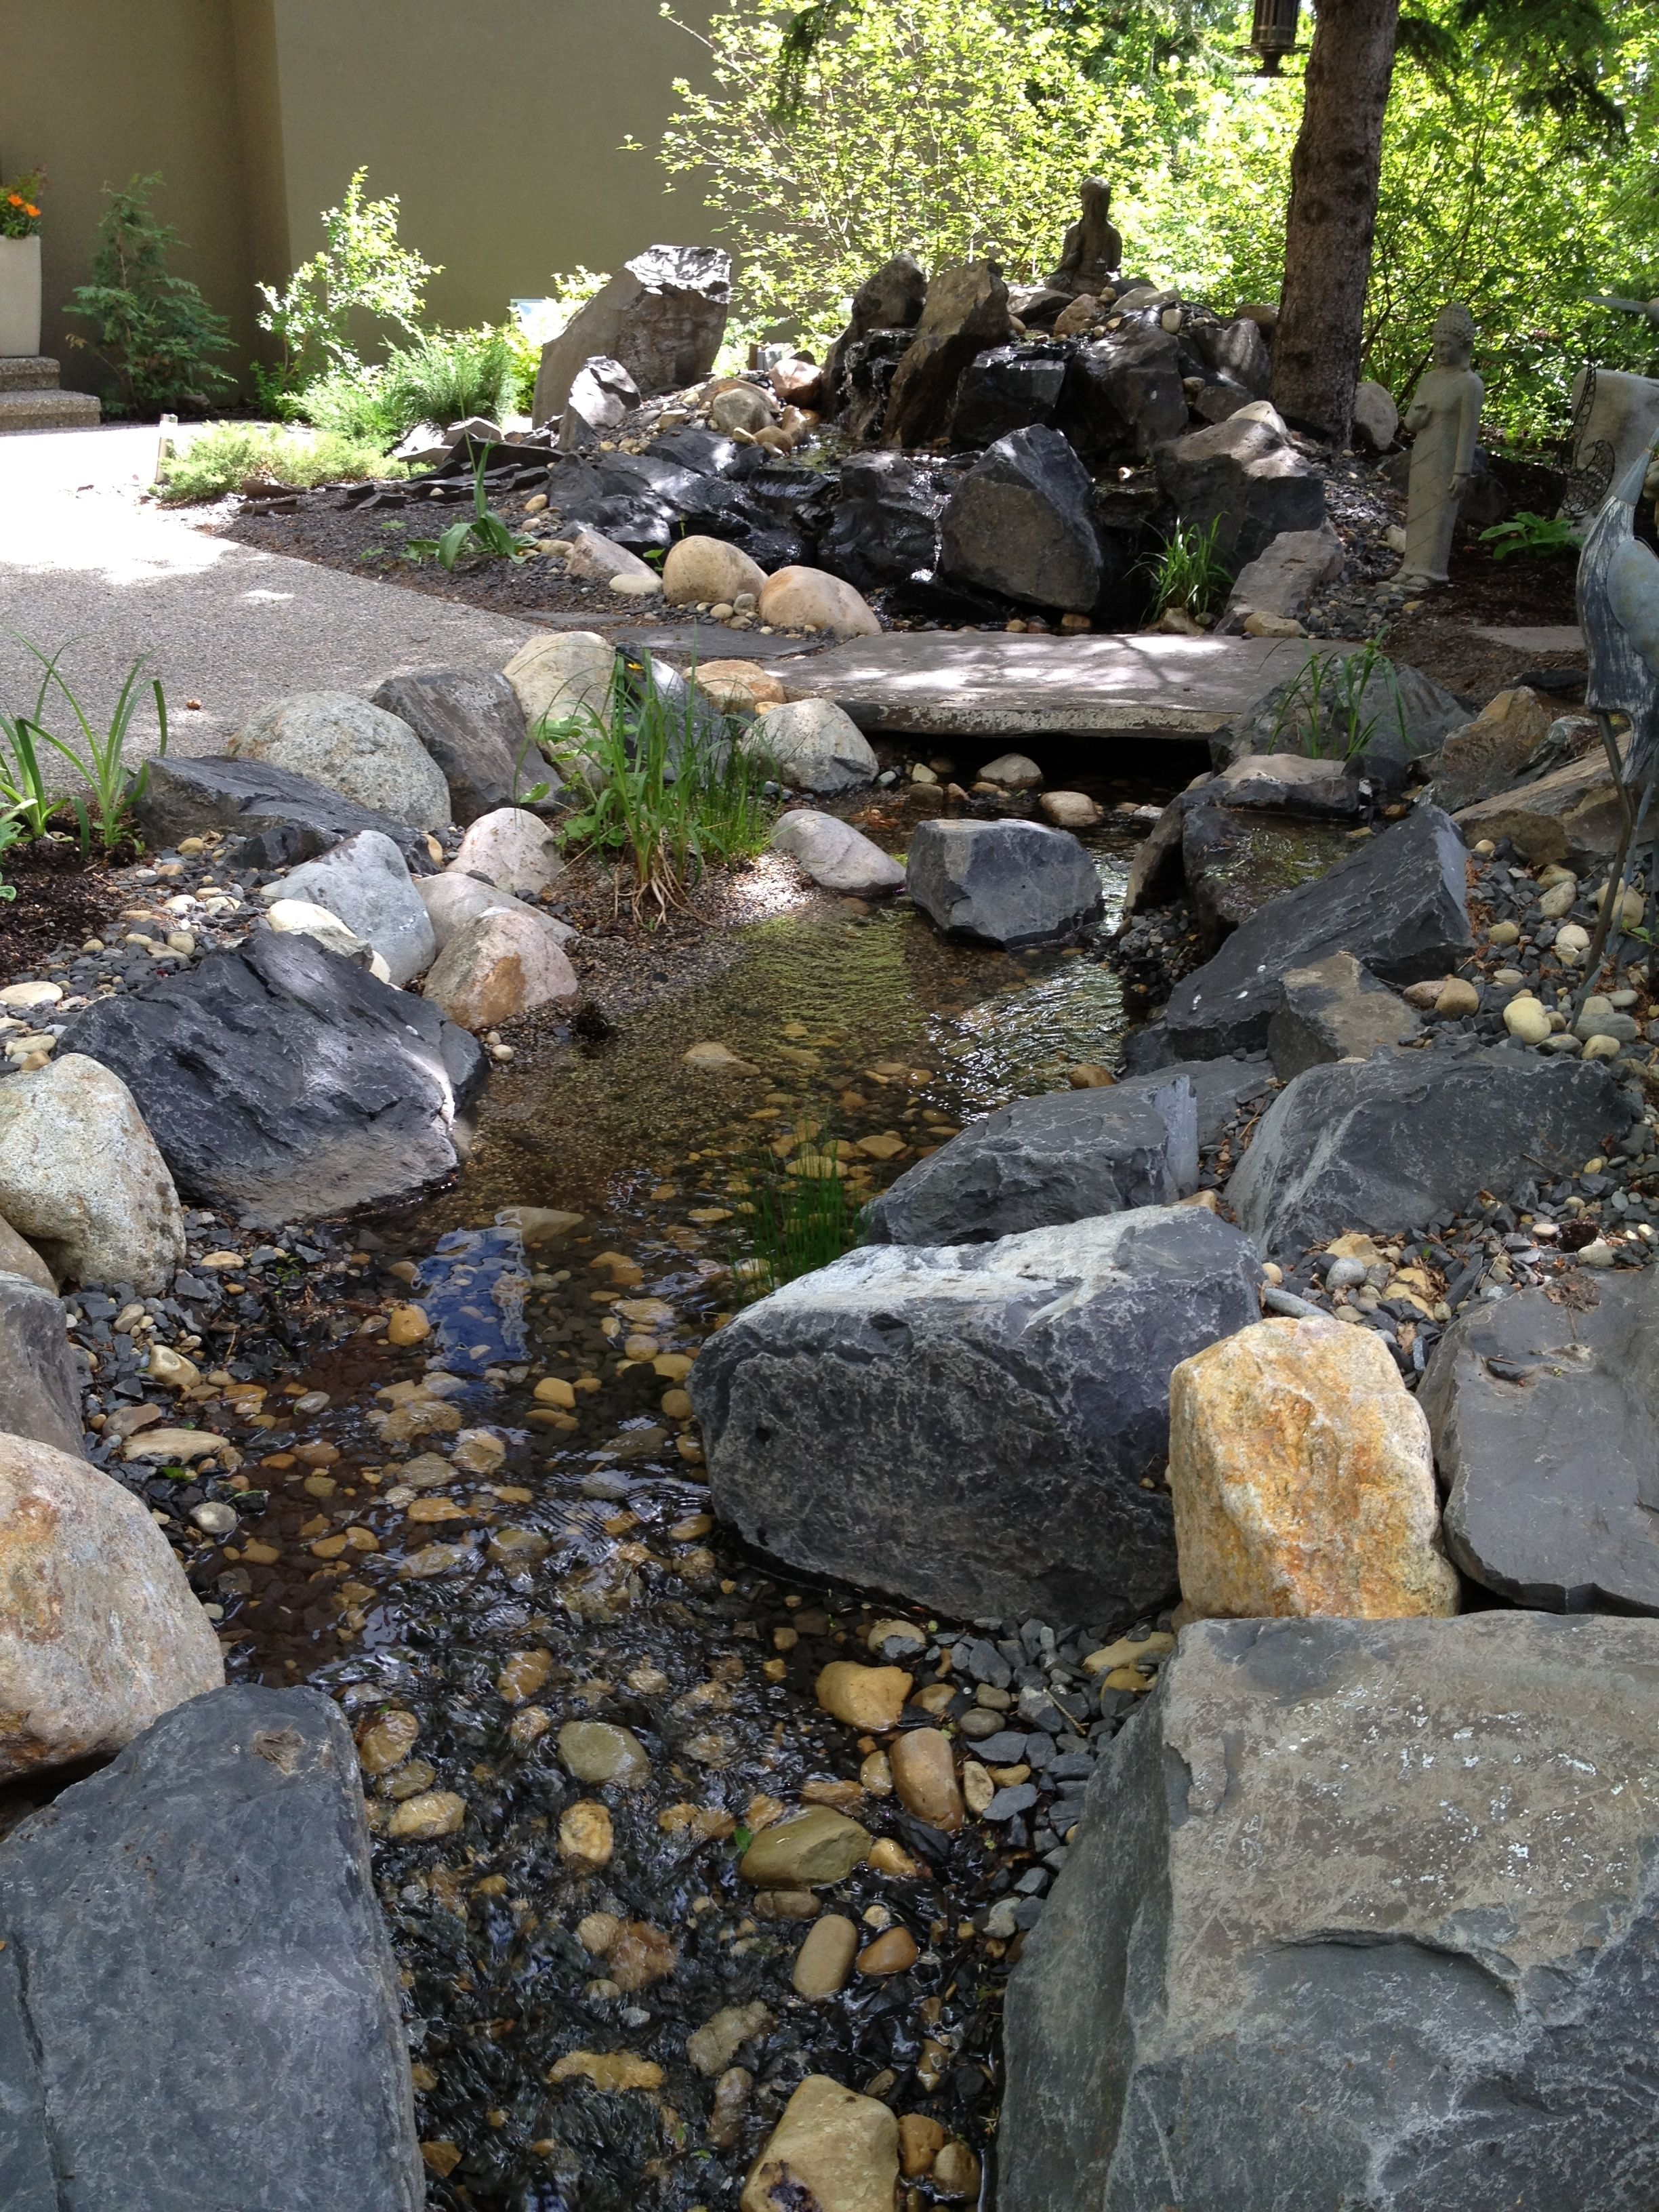 Genial DIY Backyard Creek